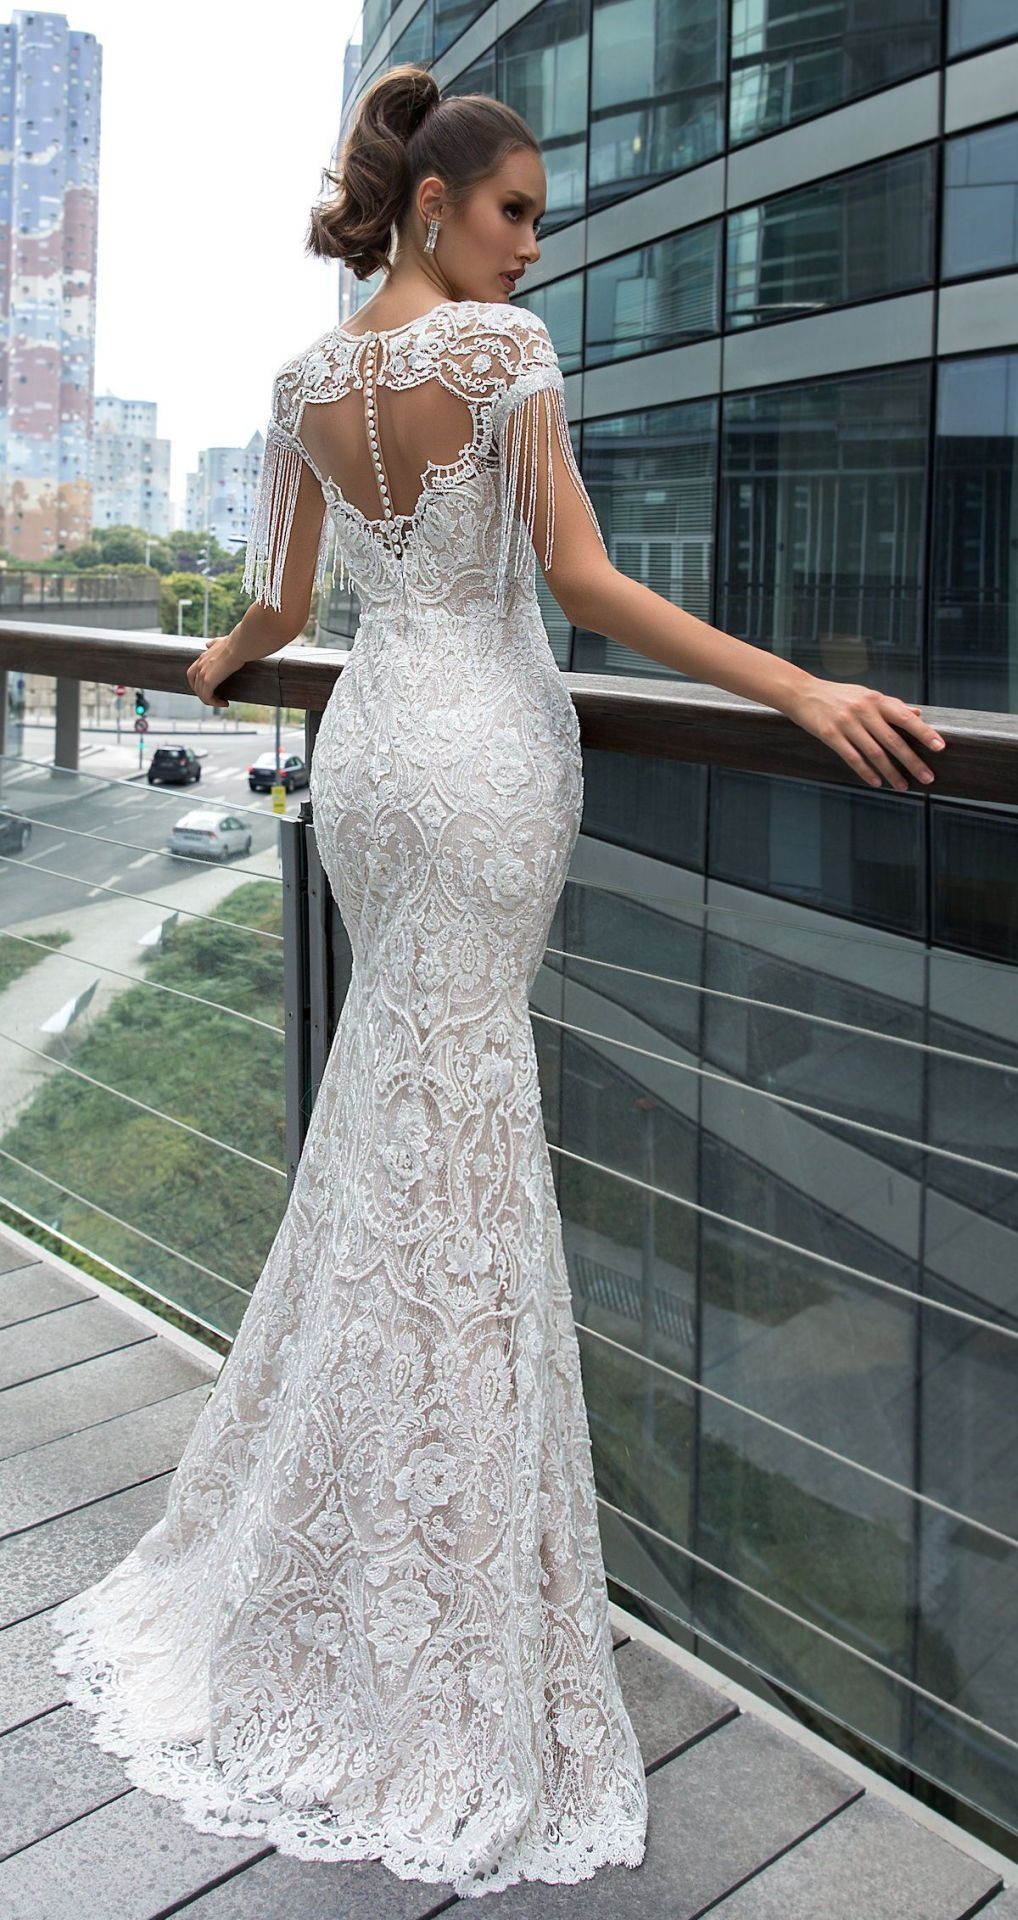 Lace Mermaid Wedding Dress By Crystal Design Dina Bridal Gown With Cap Sleeves And F Lace Mermaid Wedding Dress Wedding Dress Inspiration Wedding Dresses Lace [ 1920 x 1018 Pixel ]